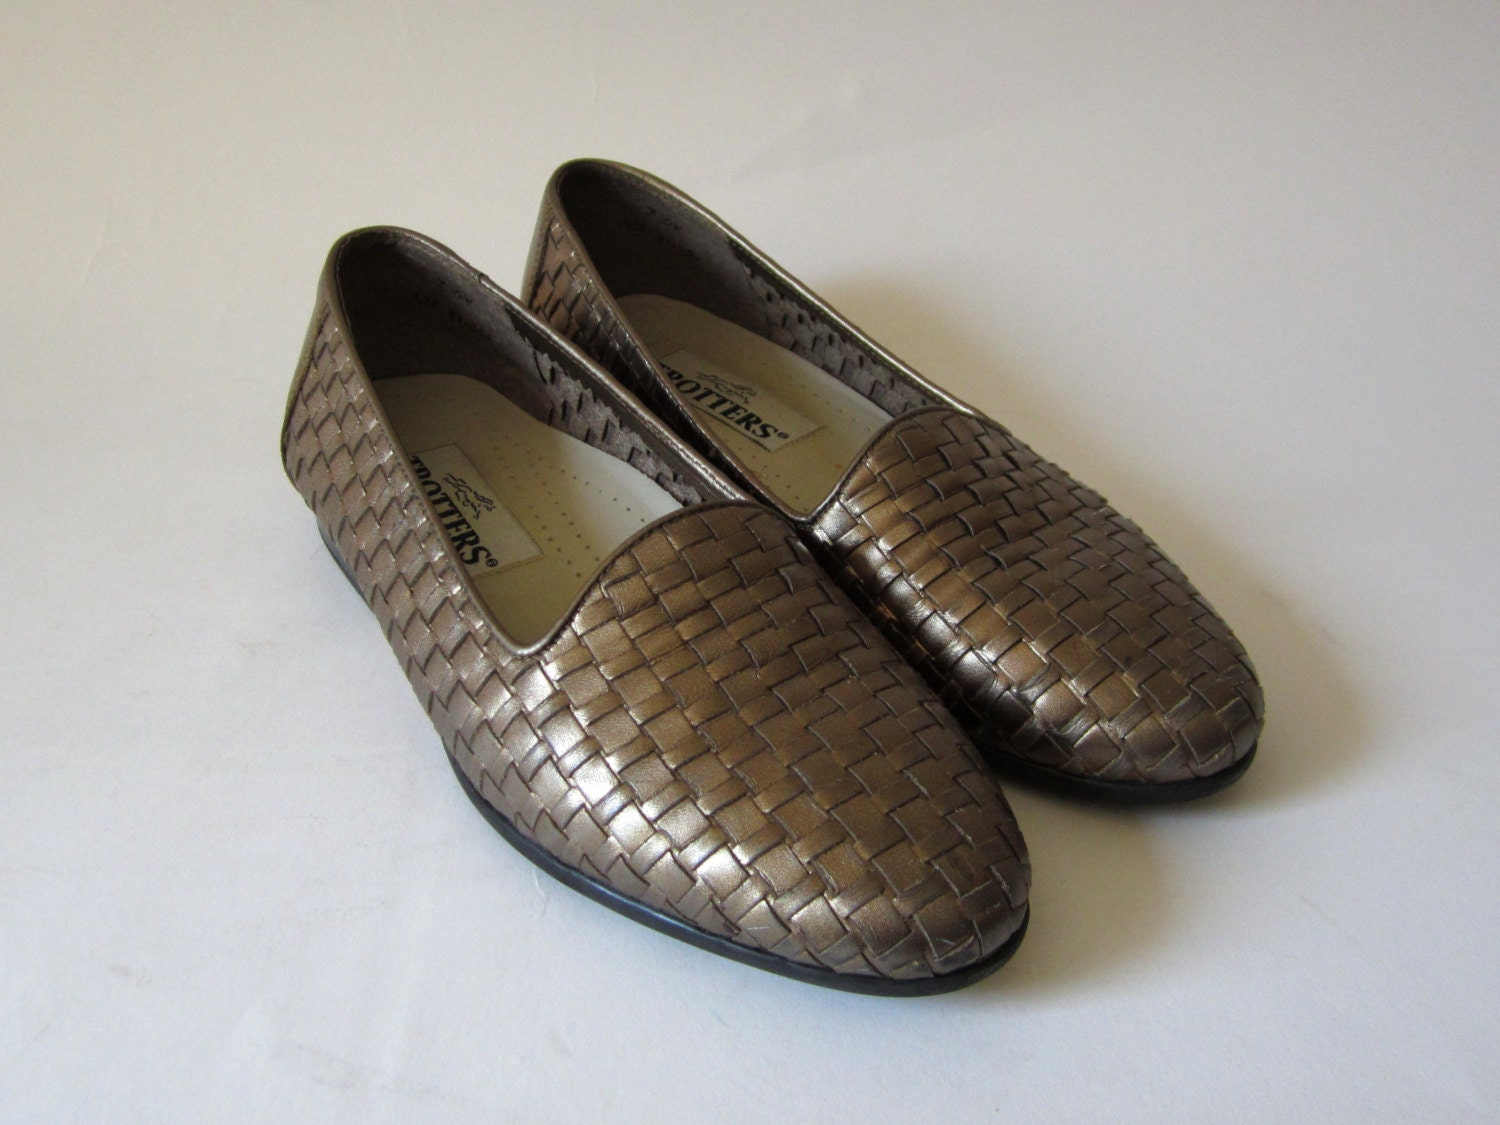 Trotters Womens Shoes Lace Oxford Brown Leather 7N - eBay (i